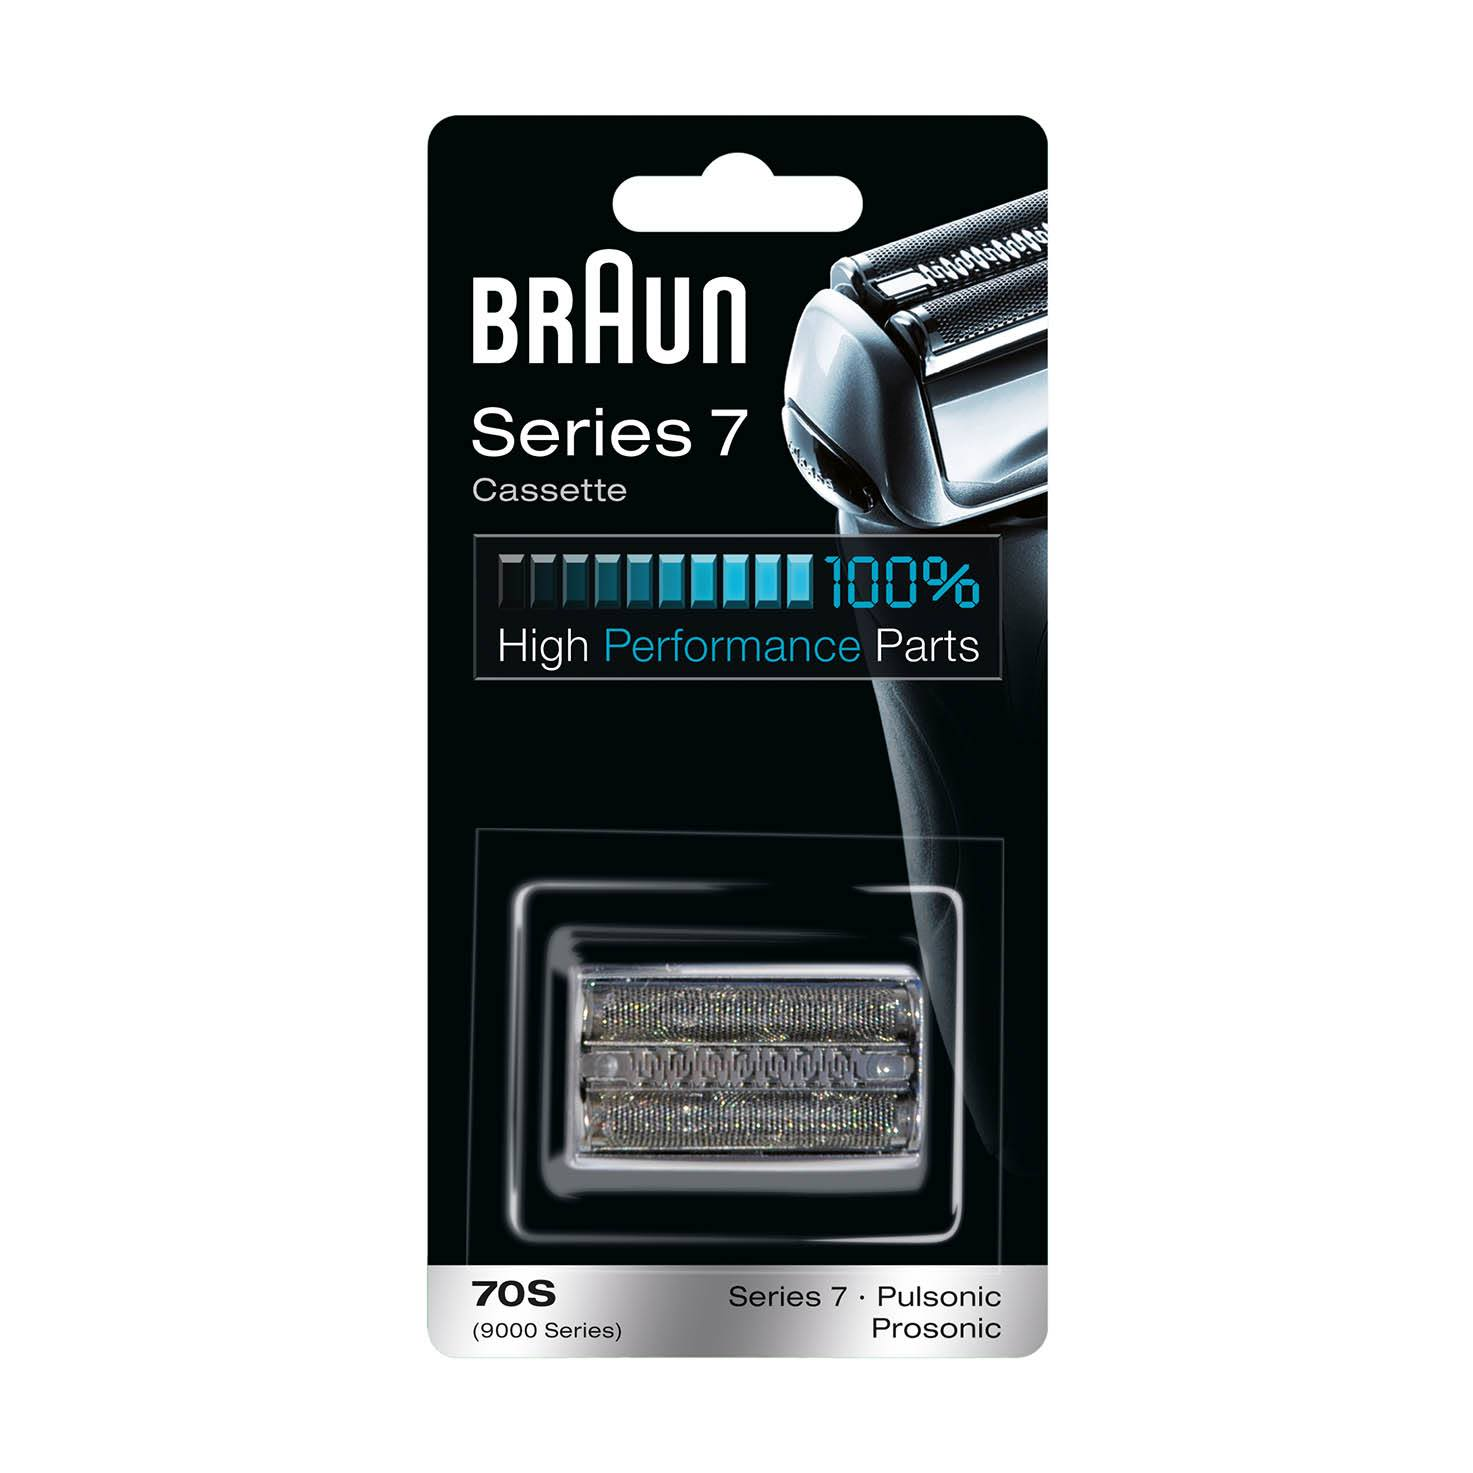 Braun Series 7 Combi 70S Cassette Replacement pack